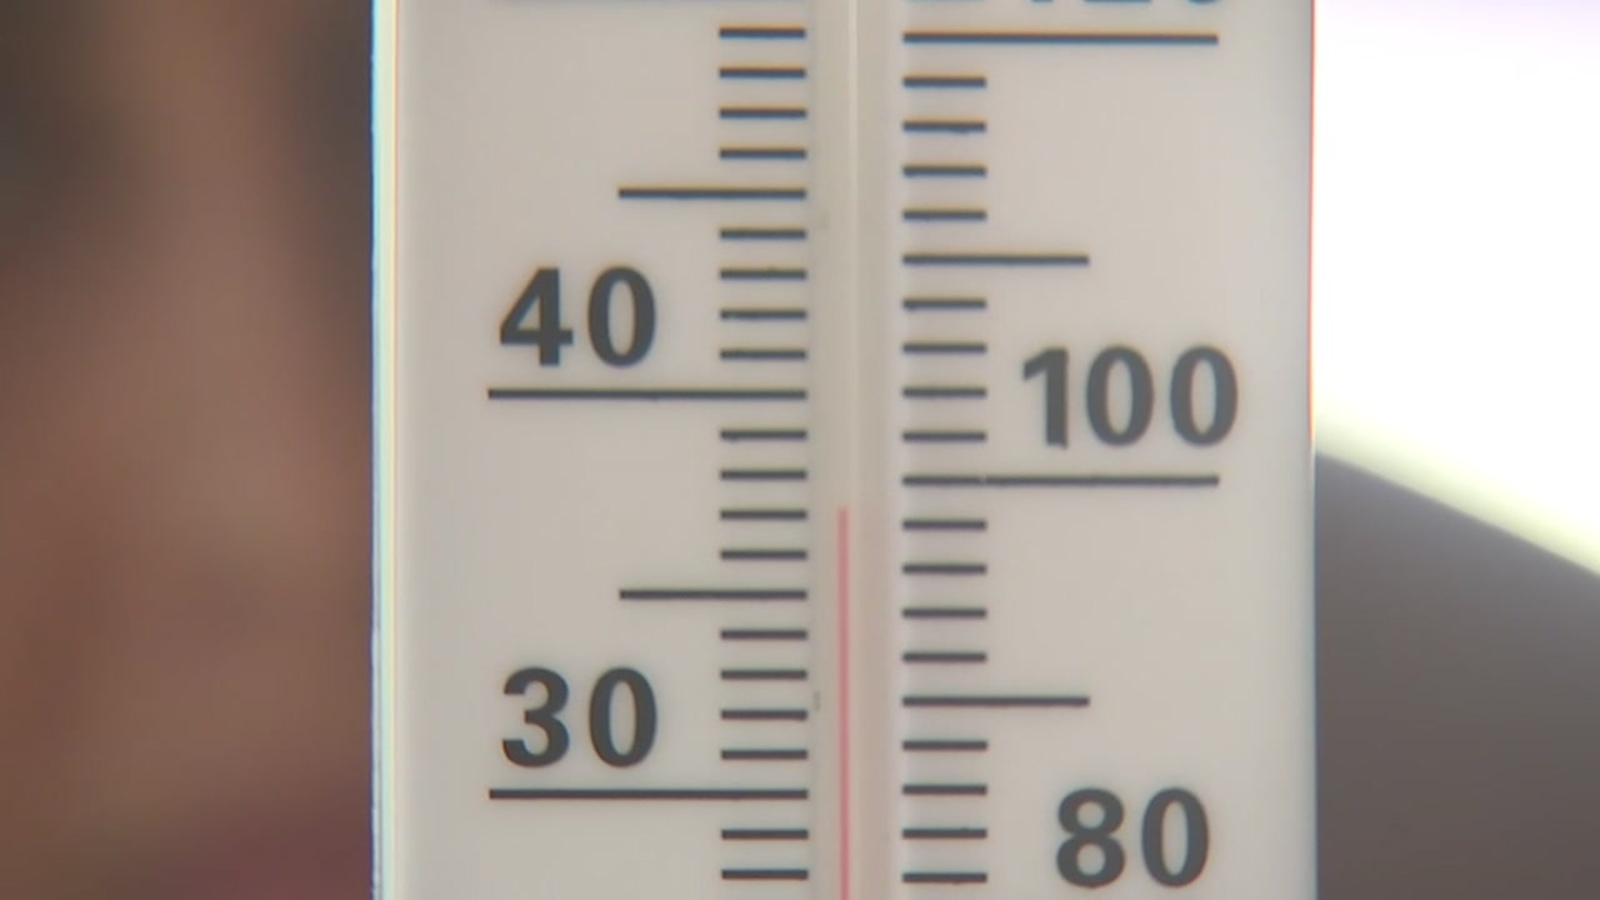 Tips on staying safe through the NC heat wave